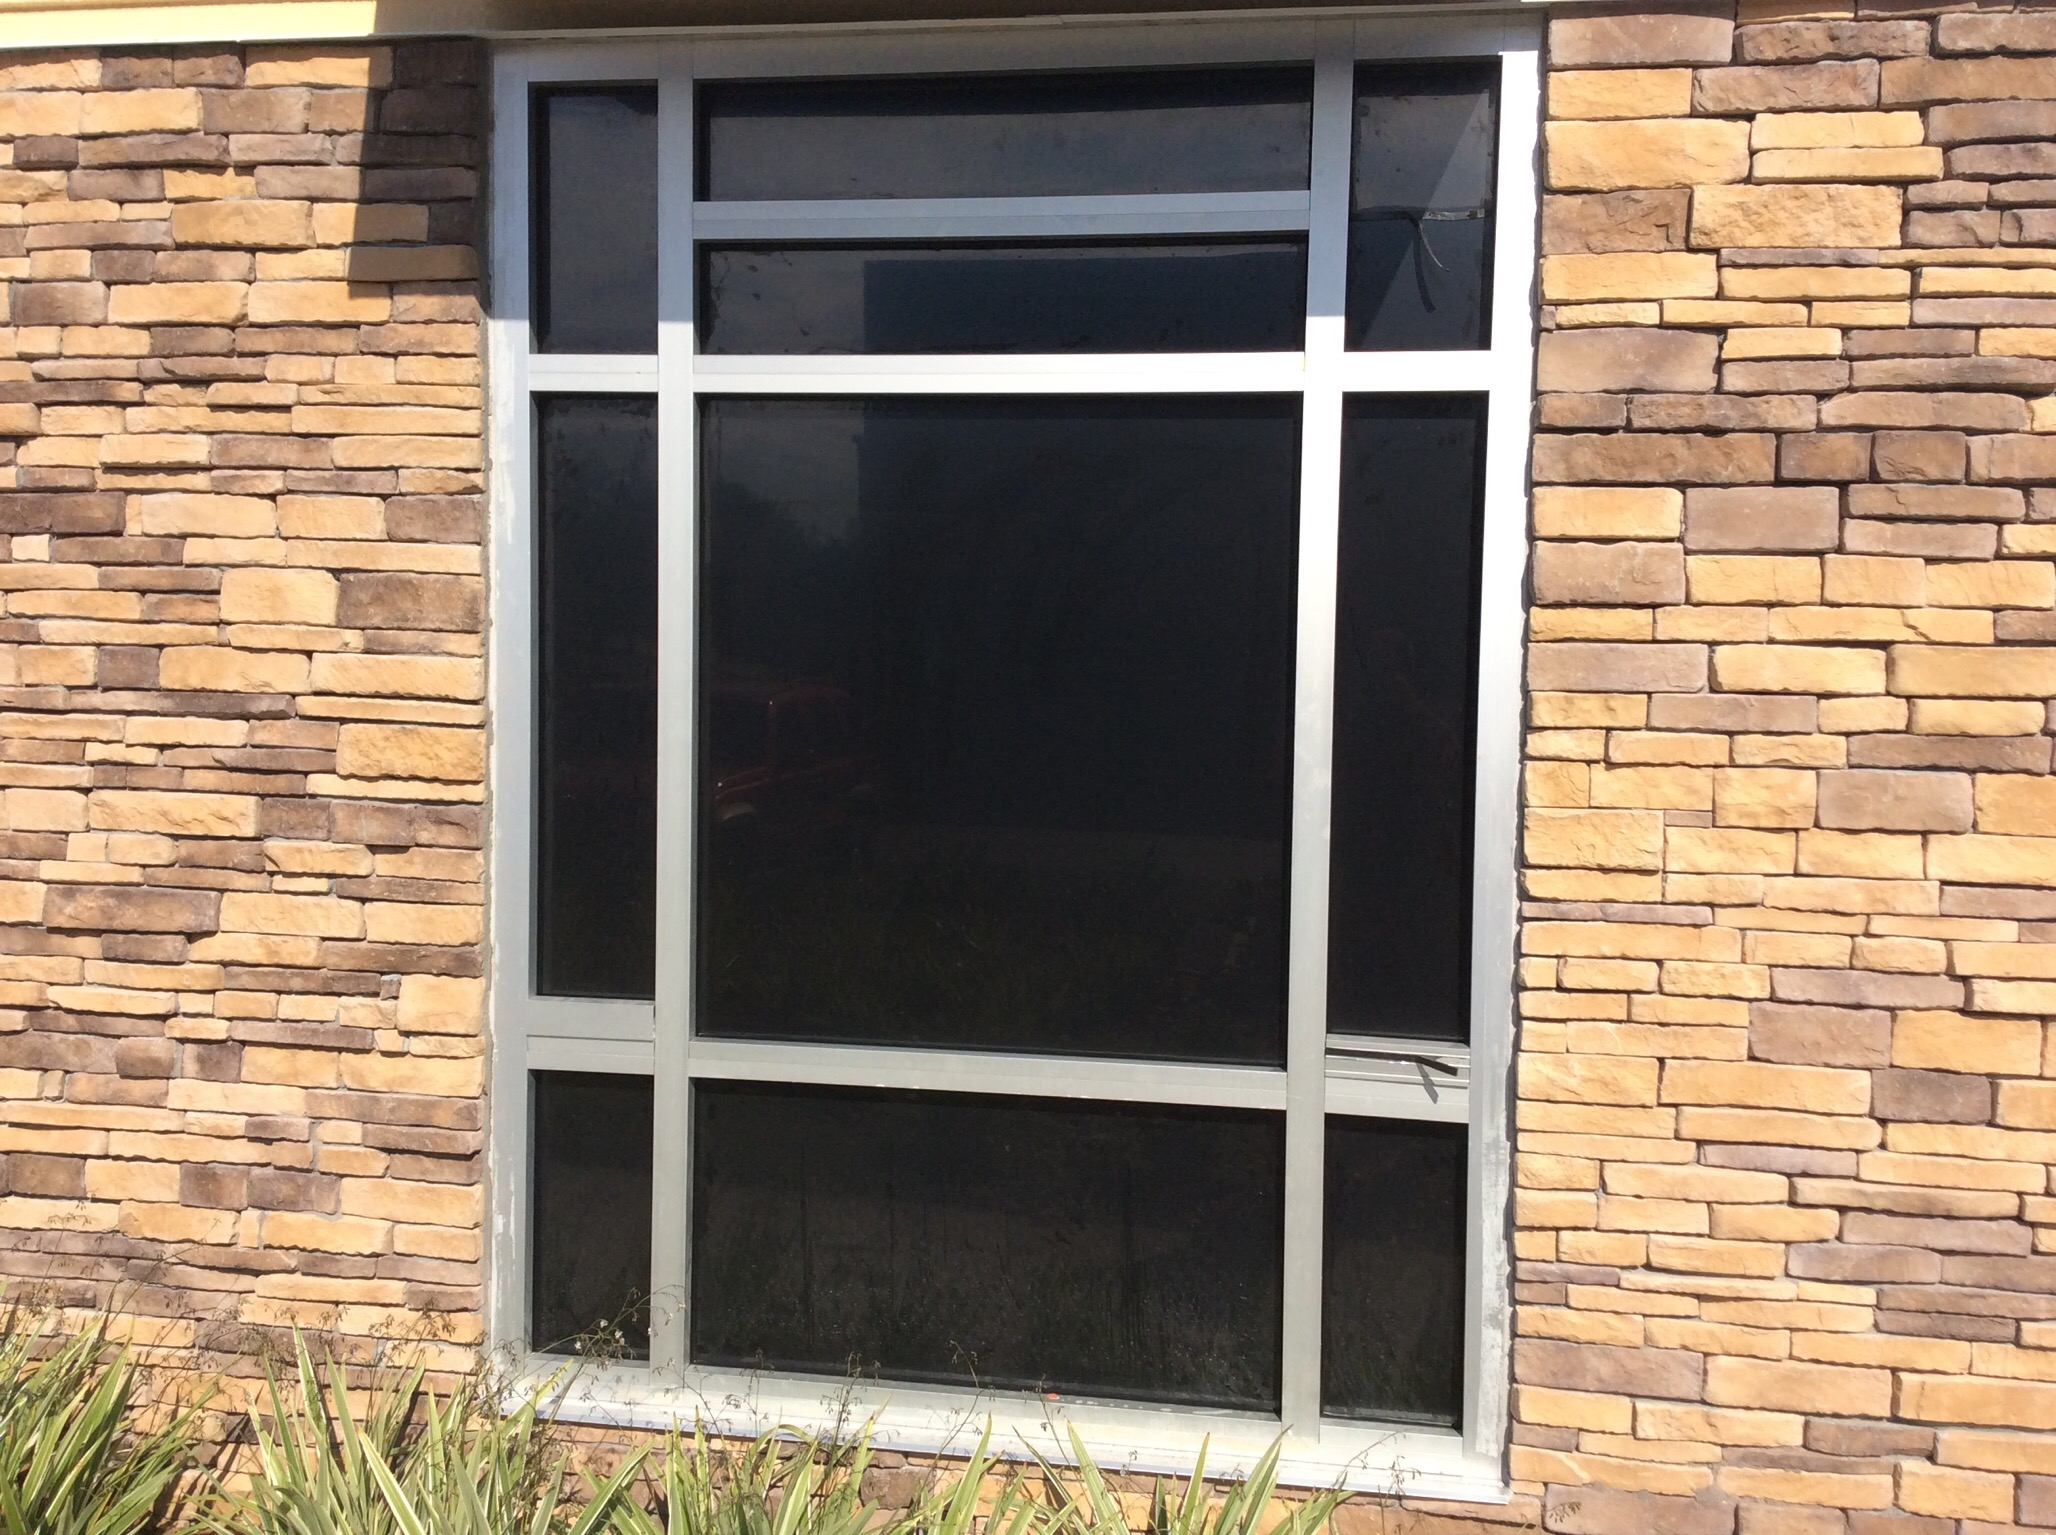 Window Film Houston TX - Home Tint Installation